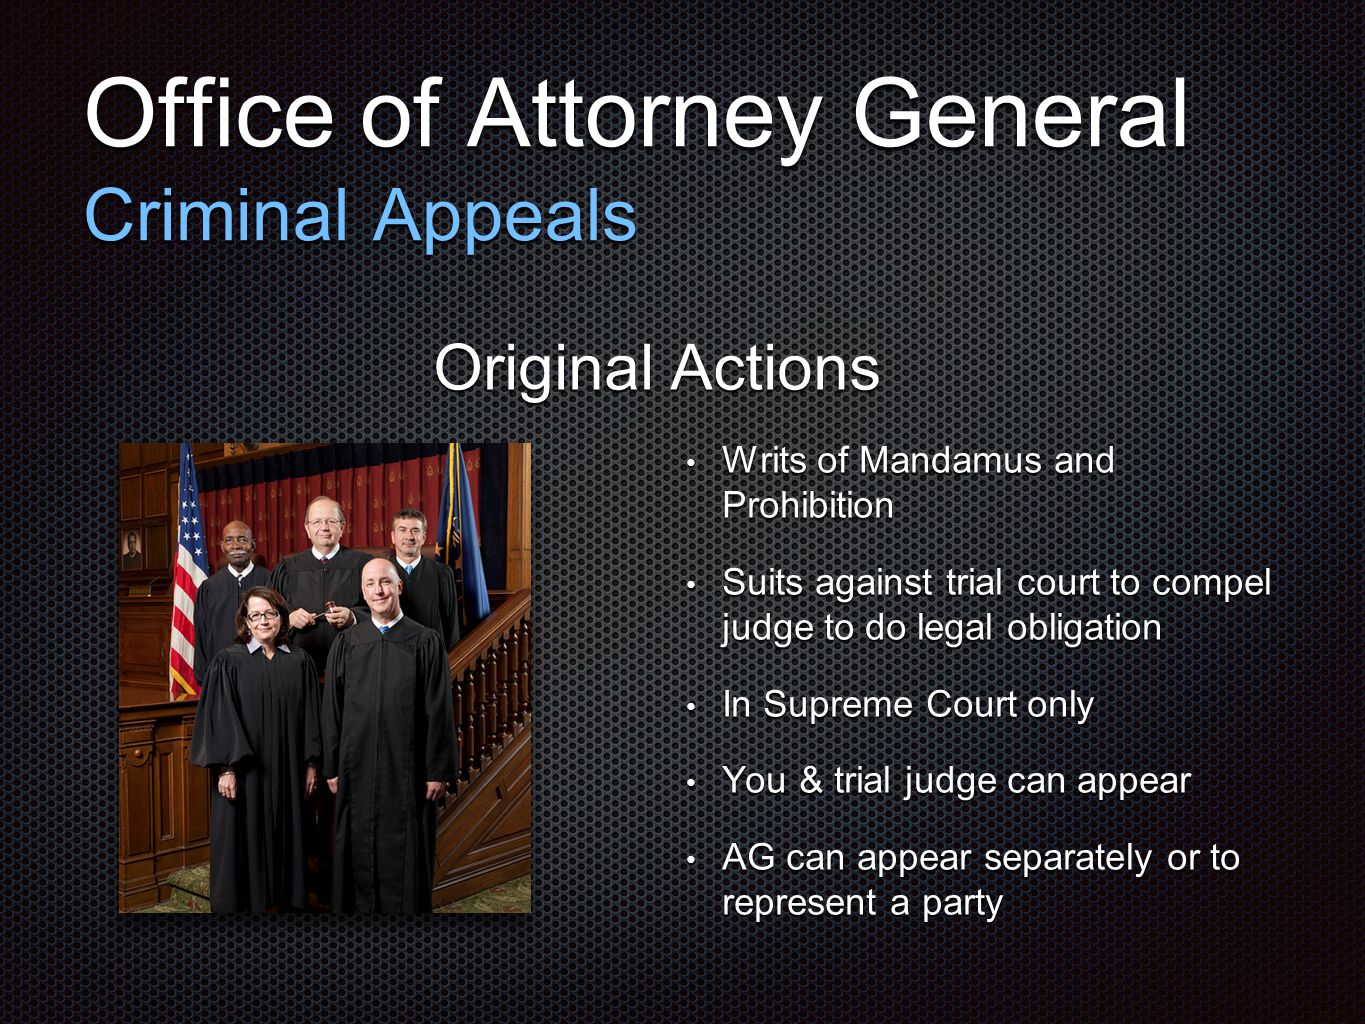 Office of Attorney General Criminal Appeals Original Actions Writs of Mandamus and Prohibition Writs of Mandamus and Prohibition Suits against trial court to compel judge to do legal obligation Suits against trial court to compel judge to do legal obligation In Supreme Court only In Supreme Court only You & trial judge can appear You & trial judge can appear AG can appear separately or to represent a party AG can appear separately or to represent a party